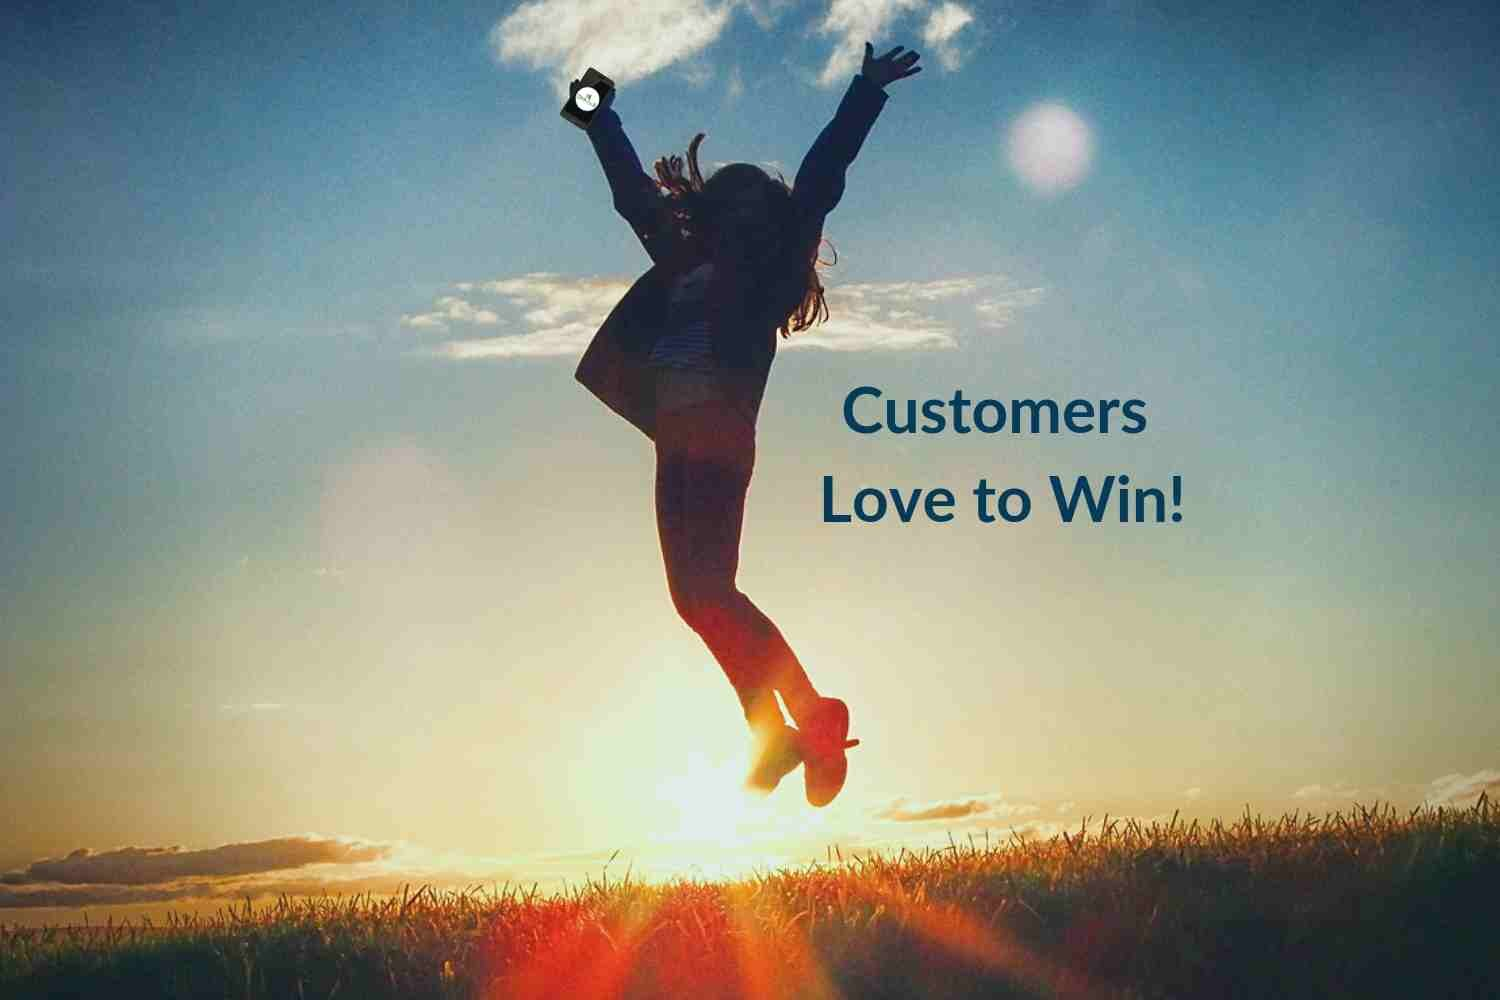 Monthly Sweepstakes keep customers engaged.